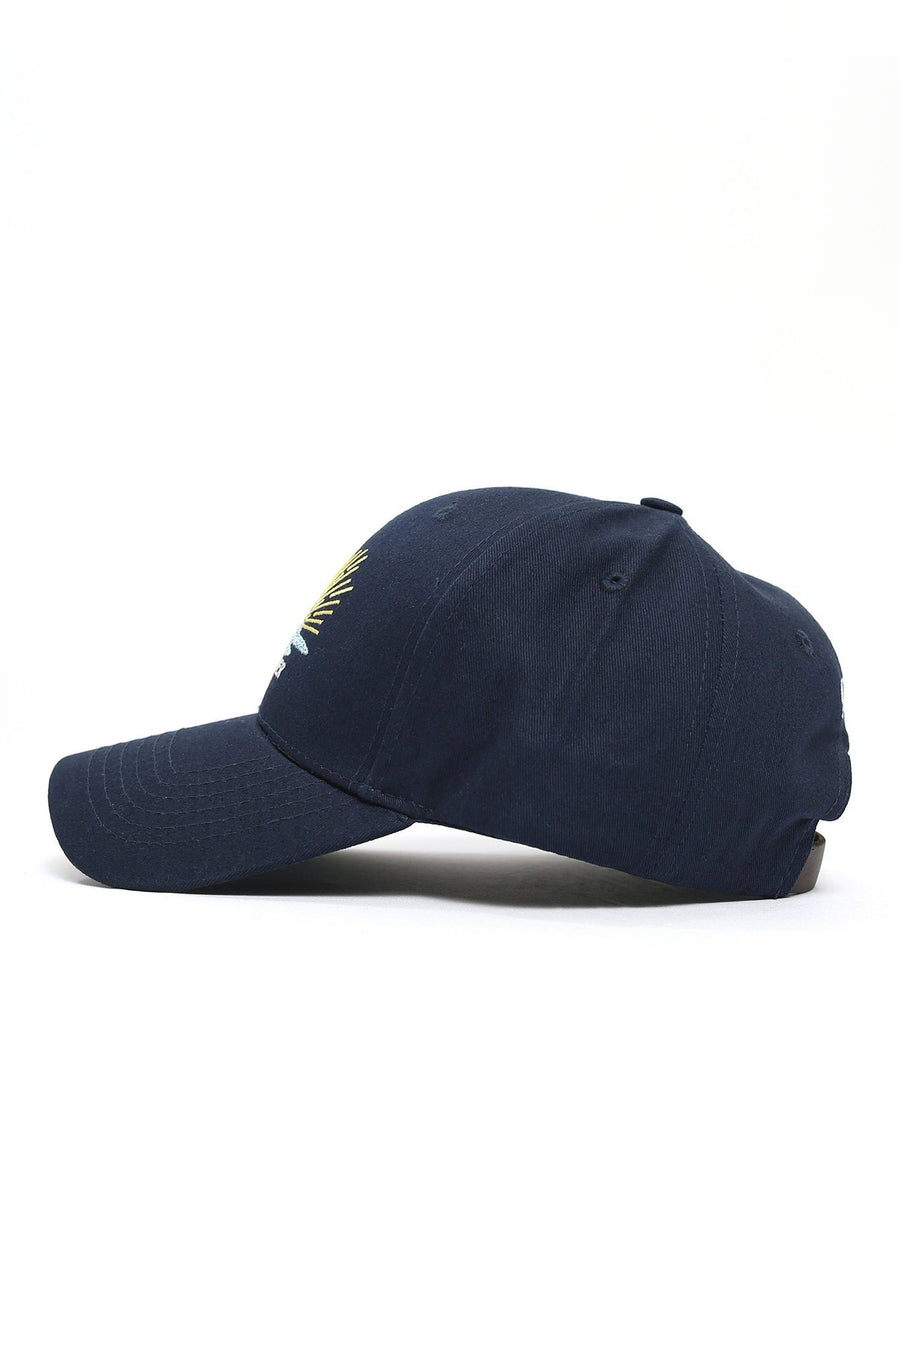 Born By Water Sunset Cap - Navy - Shore